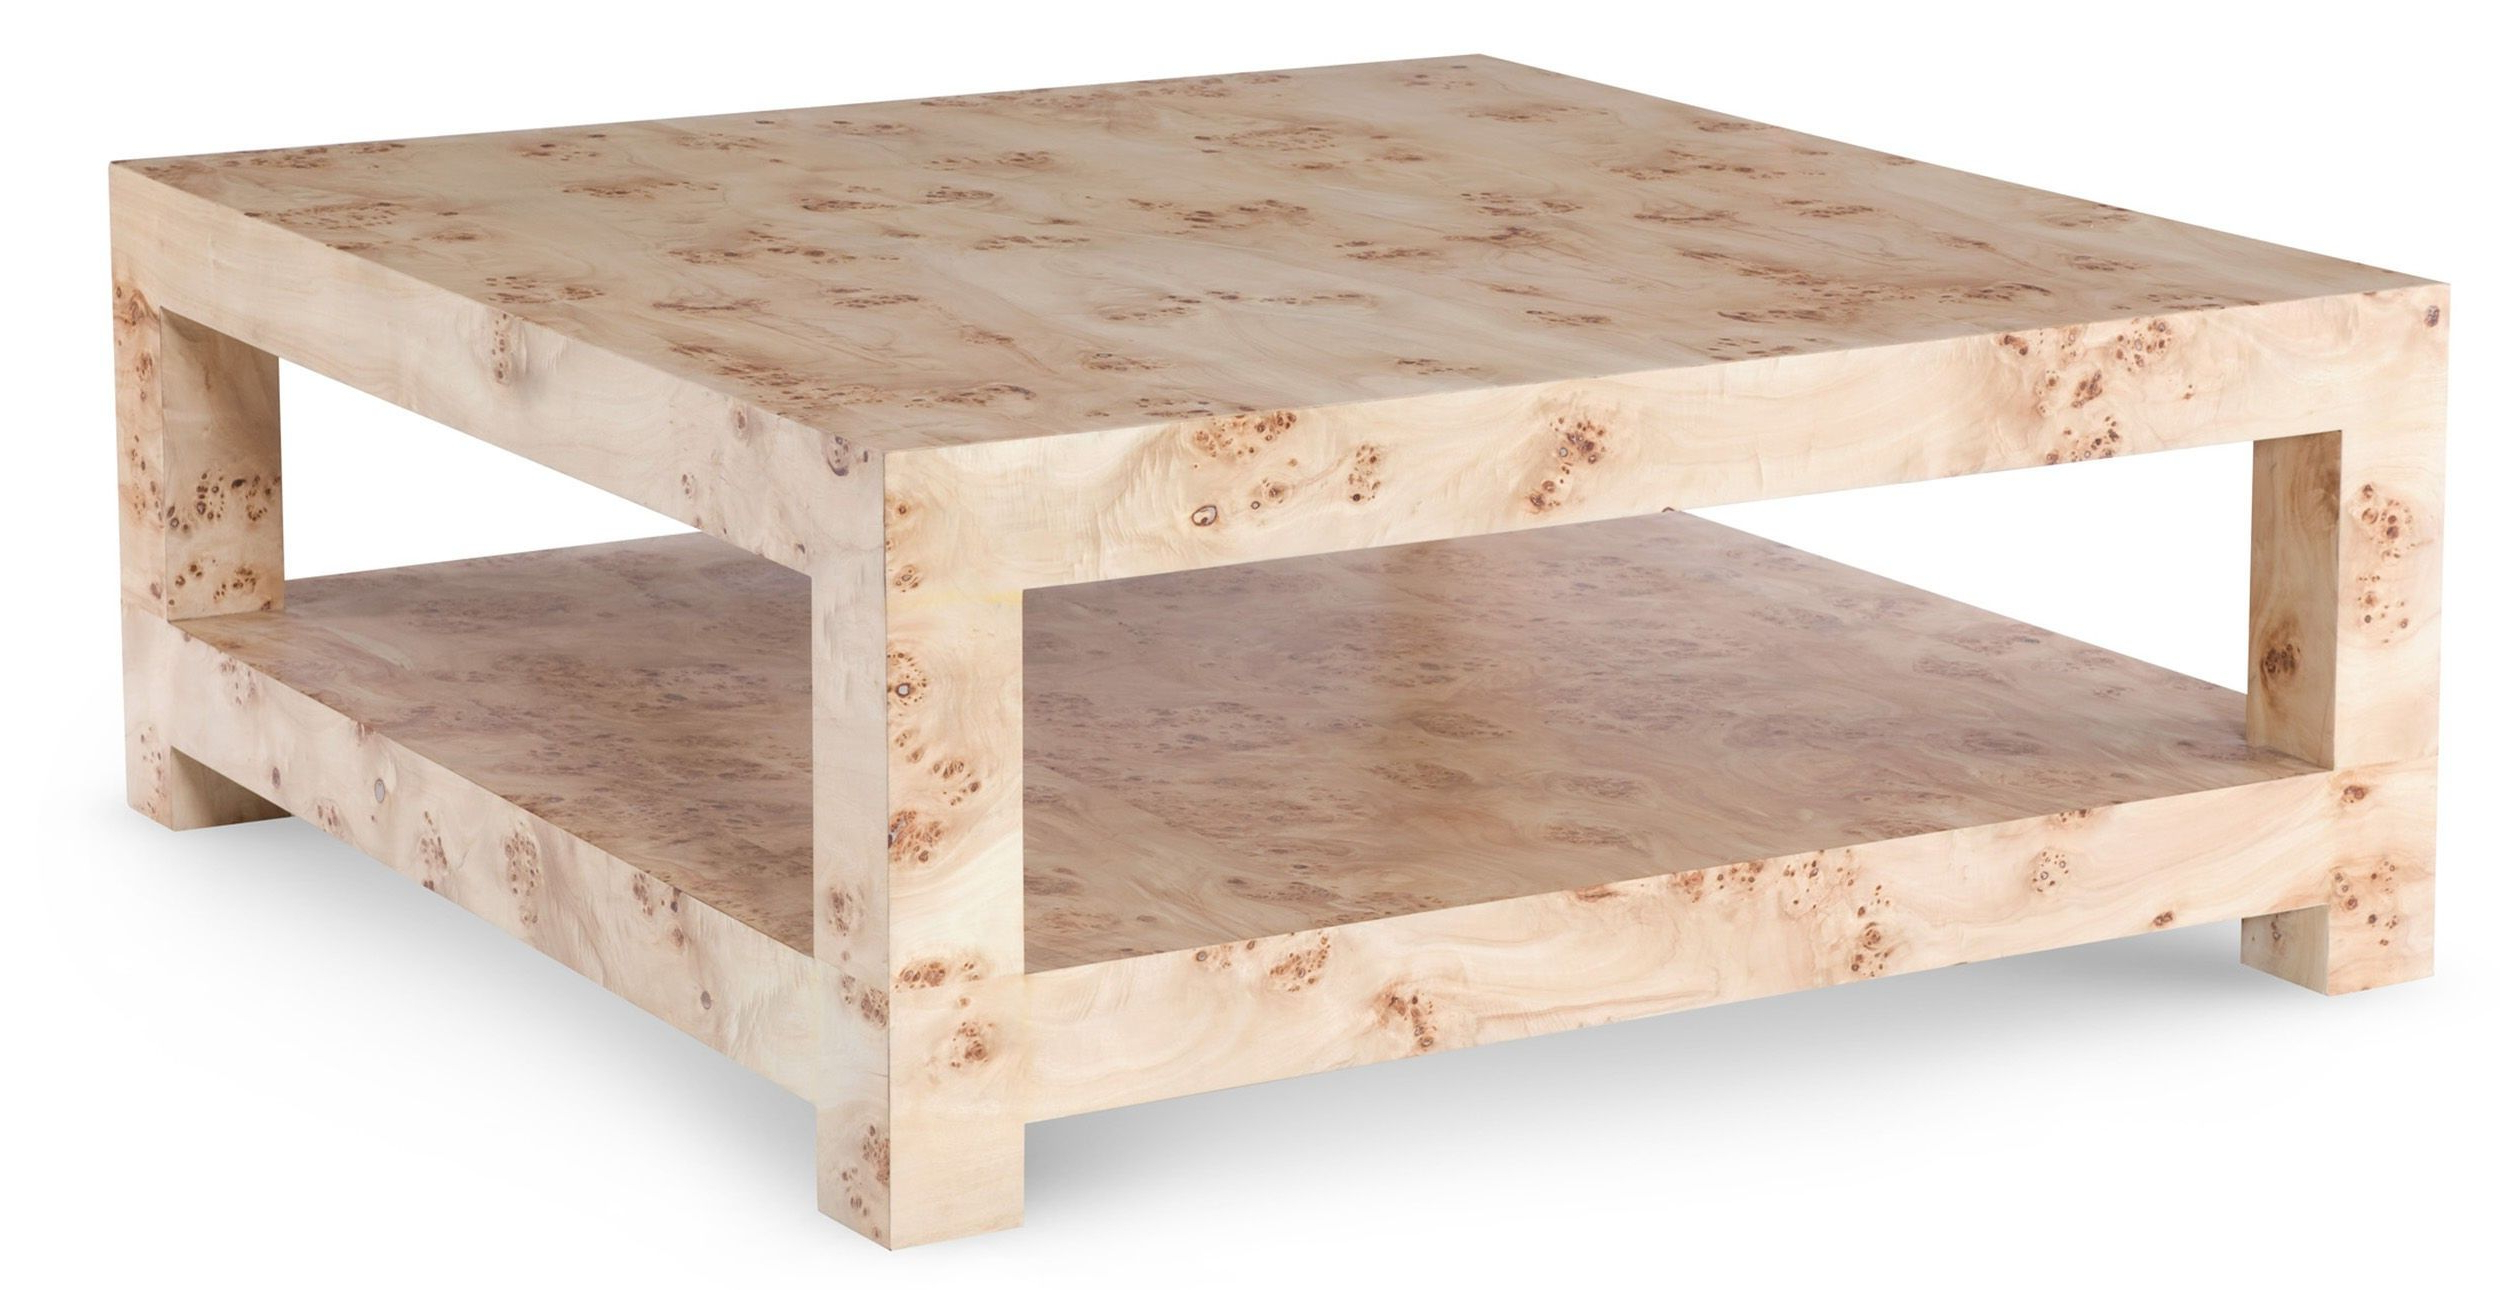 Most Recently Released Alcide Rectangular Marble Coffee Tables Pertaining To Bi Level Square Coffee Table In Mapa Burl Wood Vaneer (View 12 of 20)